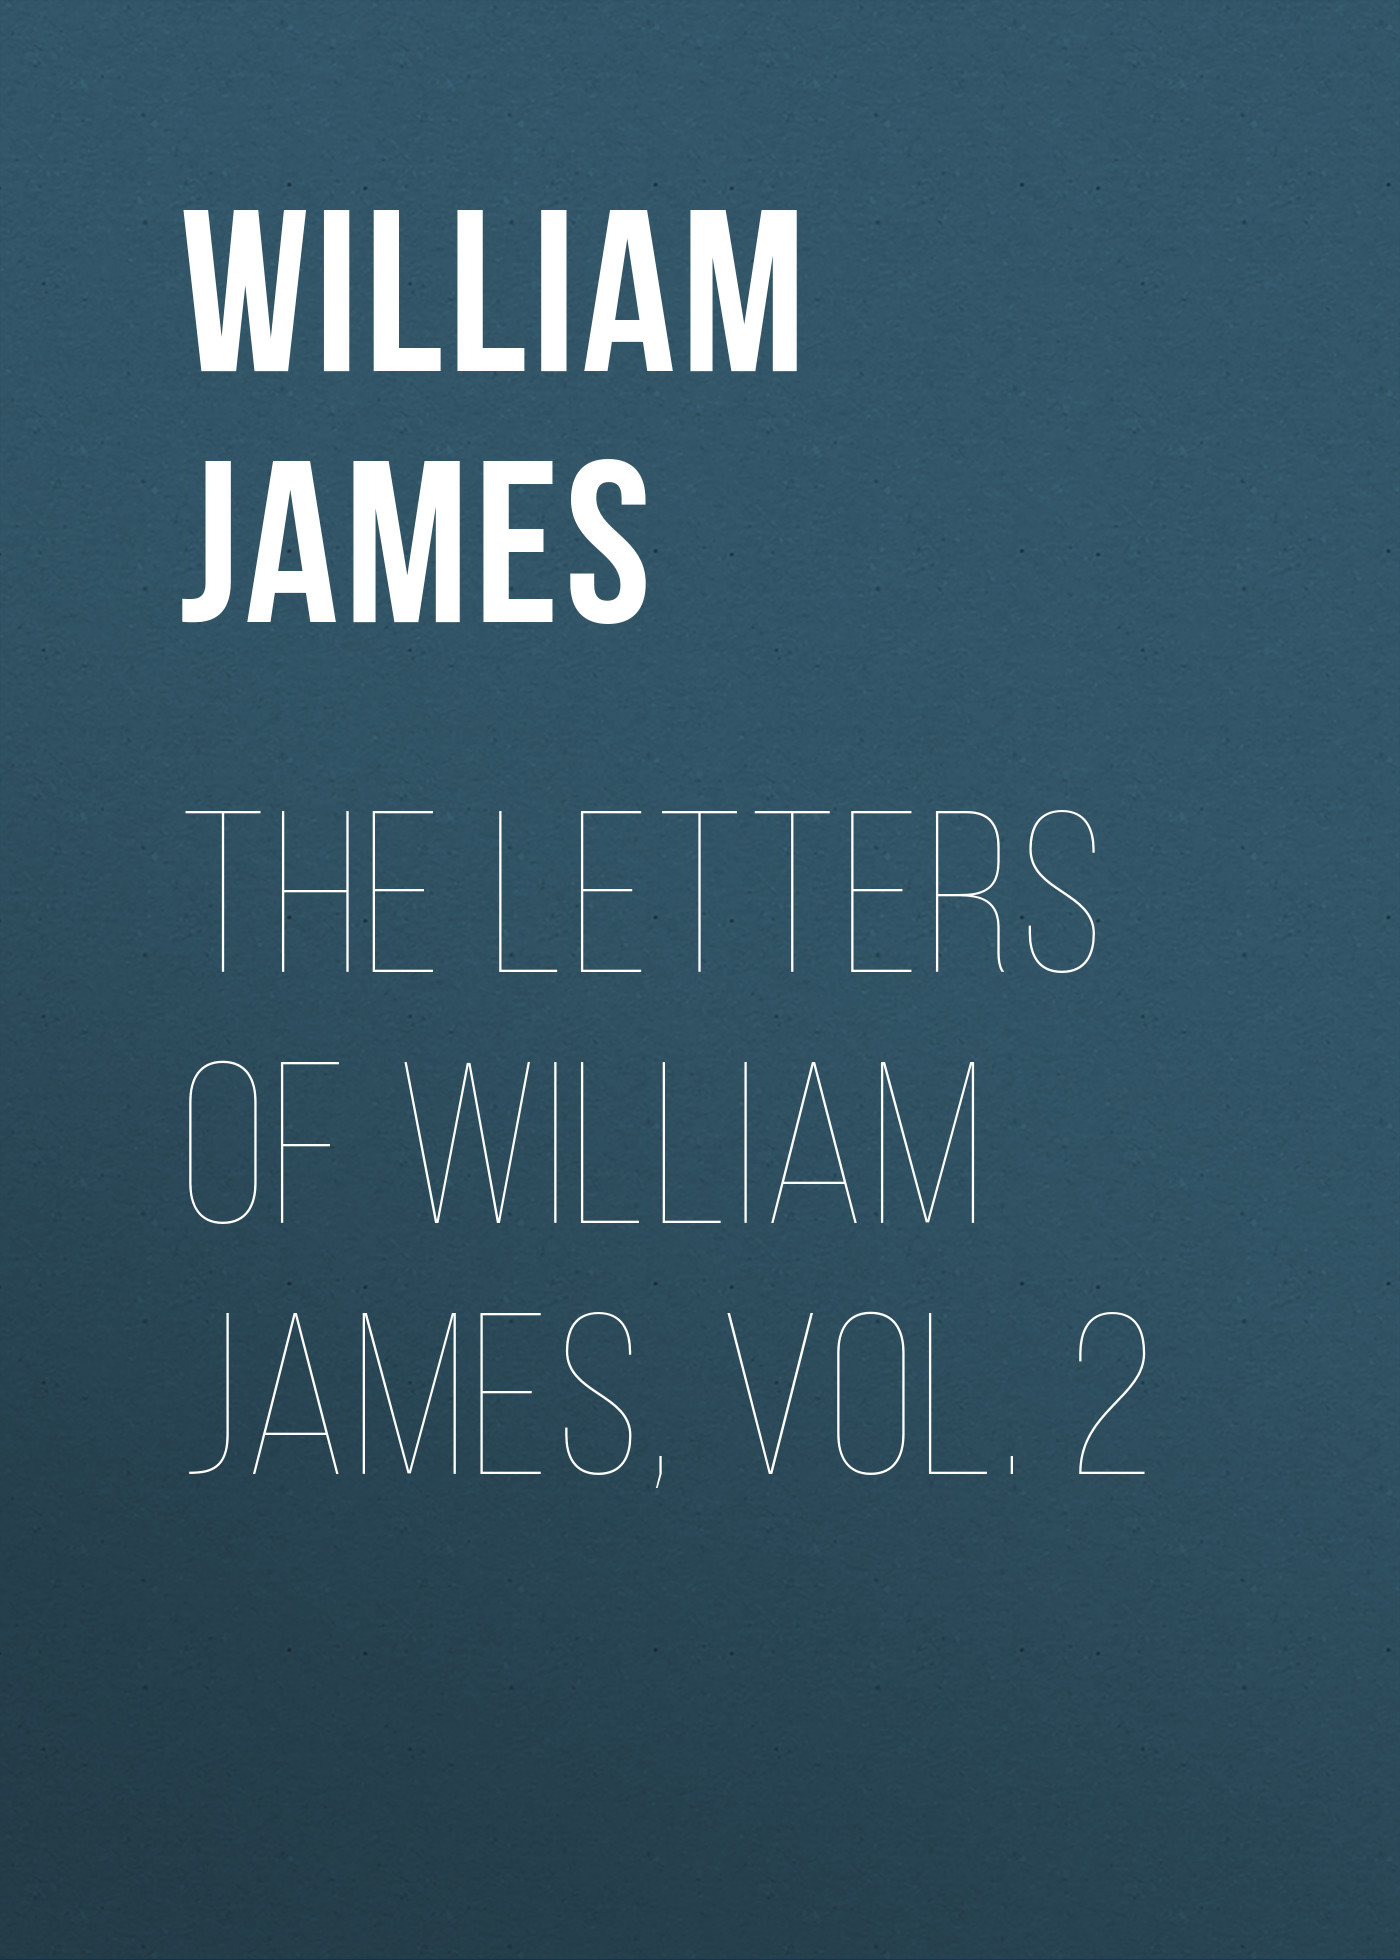 William James The Letters of William James, Vol. 2 james william the principles of psychology volume 2